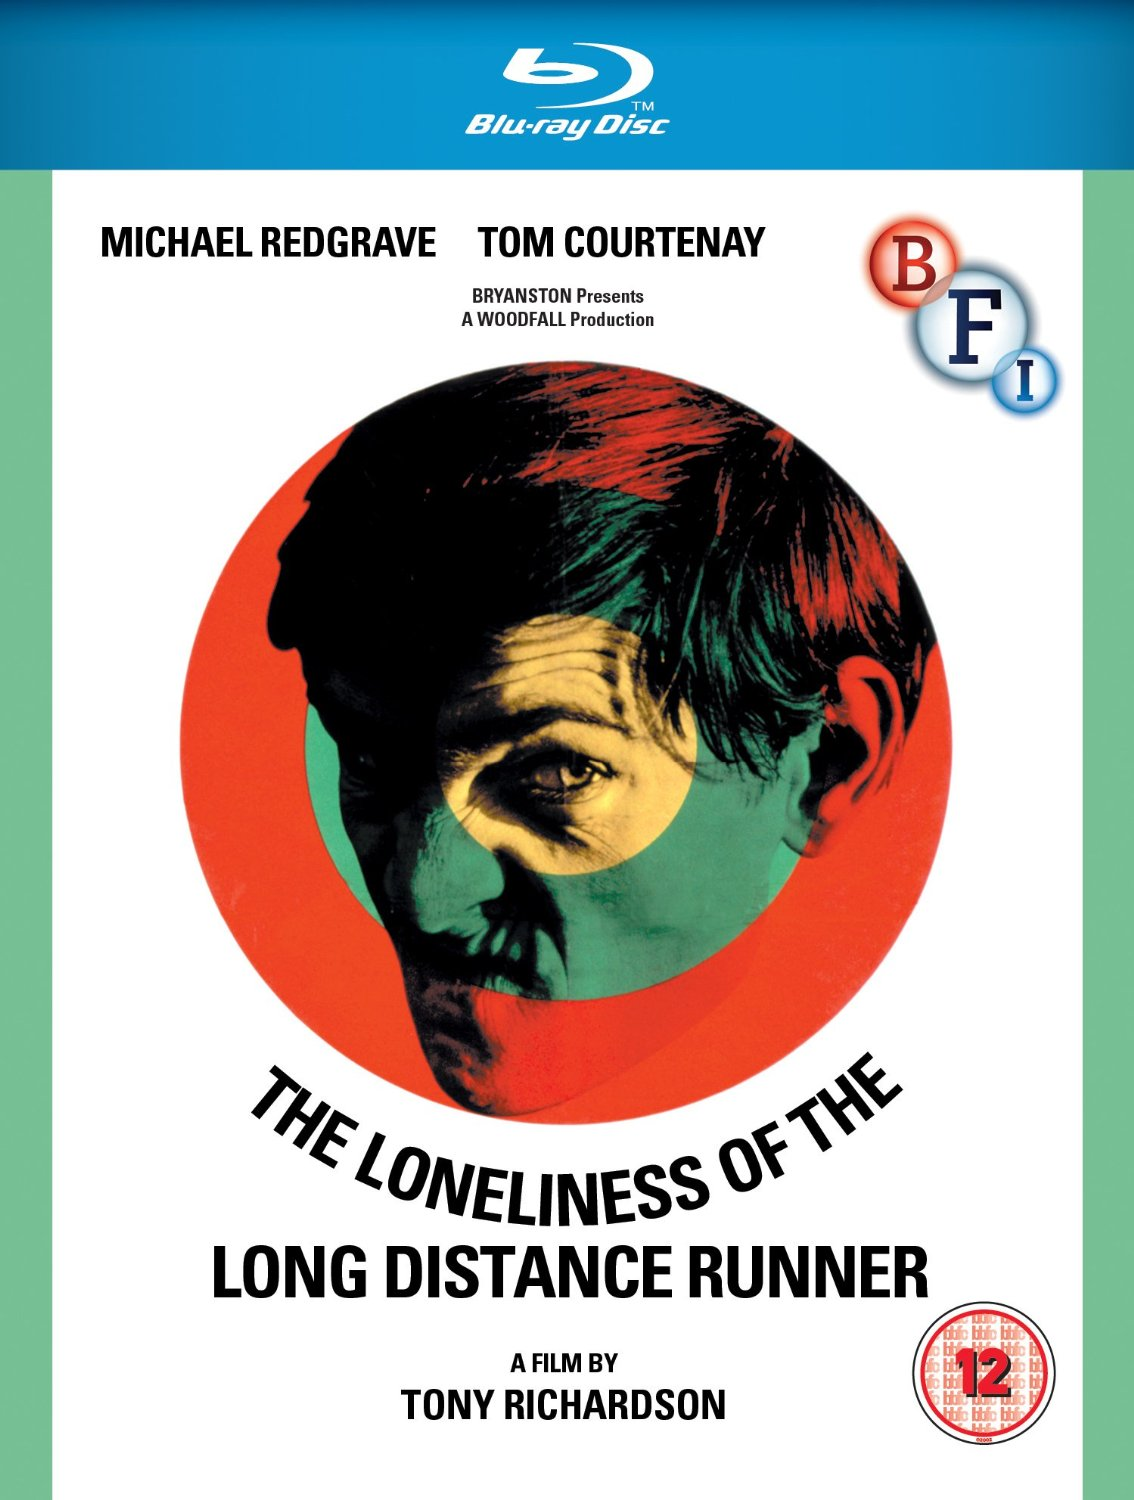 Buy The Loneliness of the Long Distance Runner (Blu-ray)